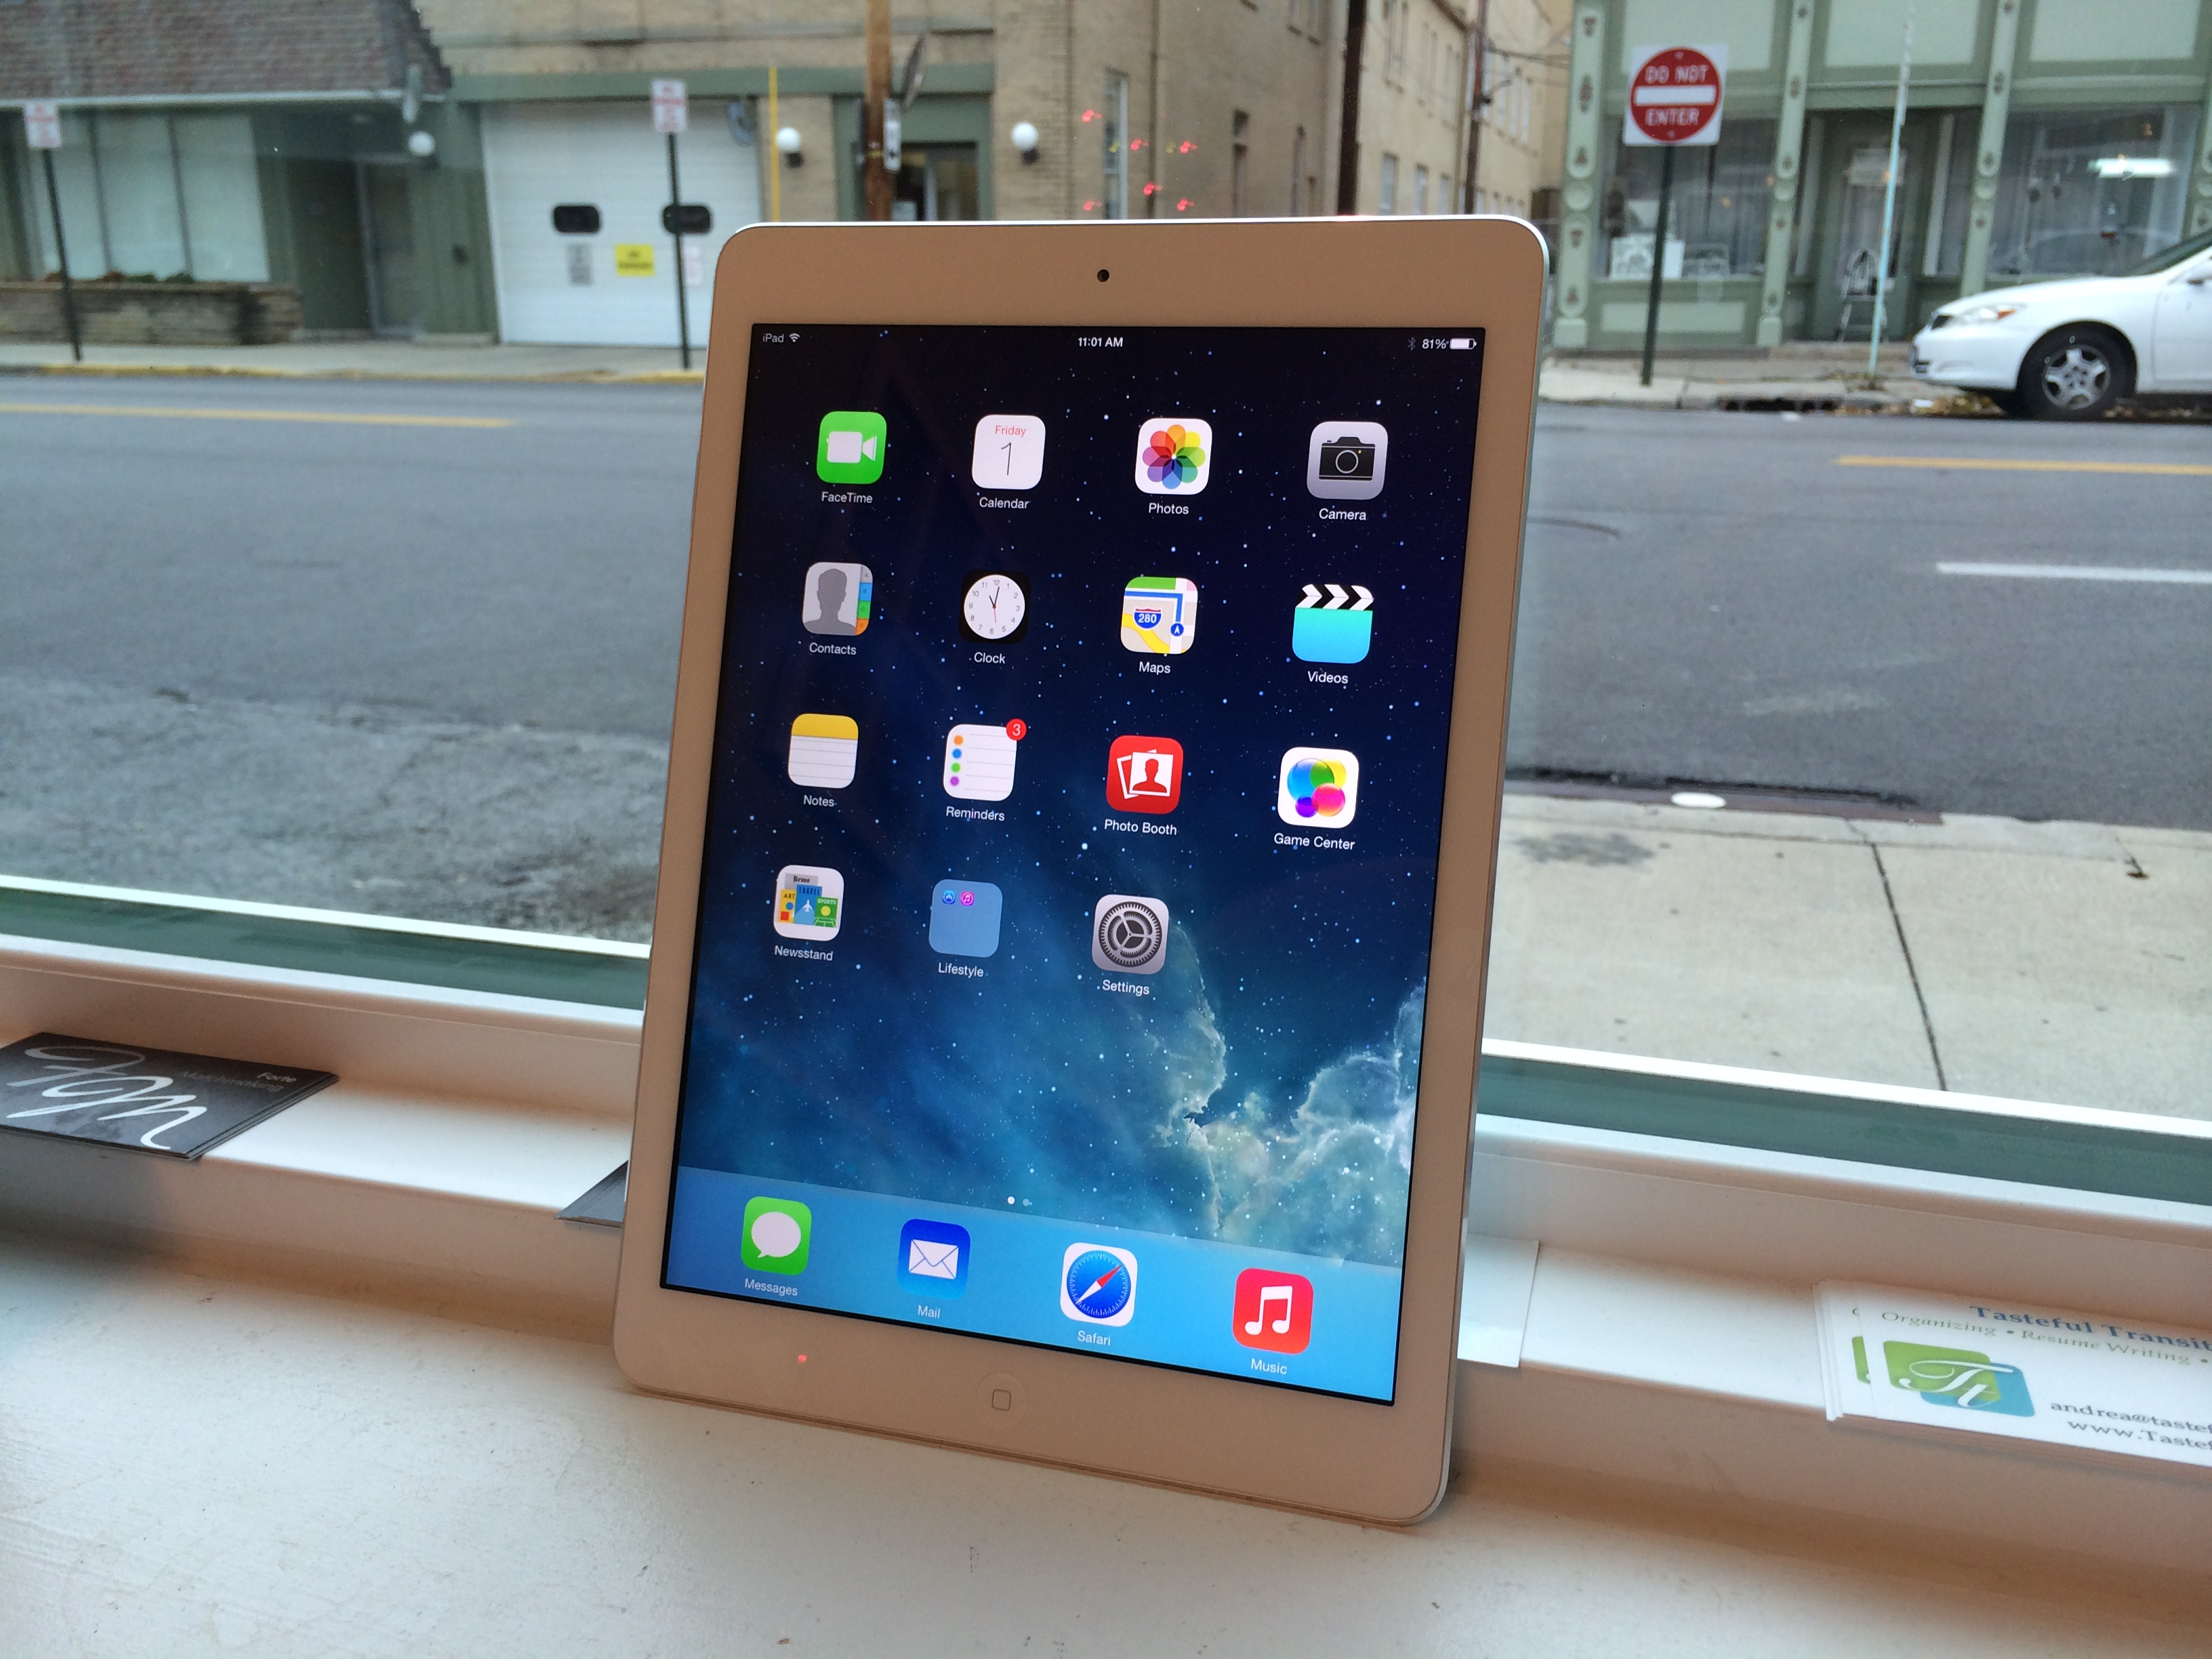 Whether you own a business, need a lightweight device when you travel, or simply want to work with the latest Apple technology, the iPad Air 2 can give you an edge. In order to use your tablet like a personal computer or laptop, you'll need a few accessories.